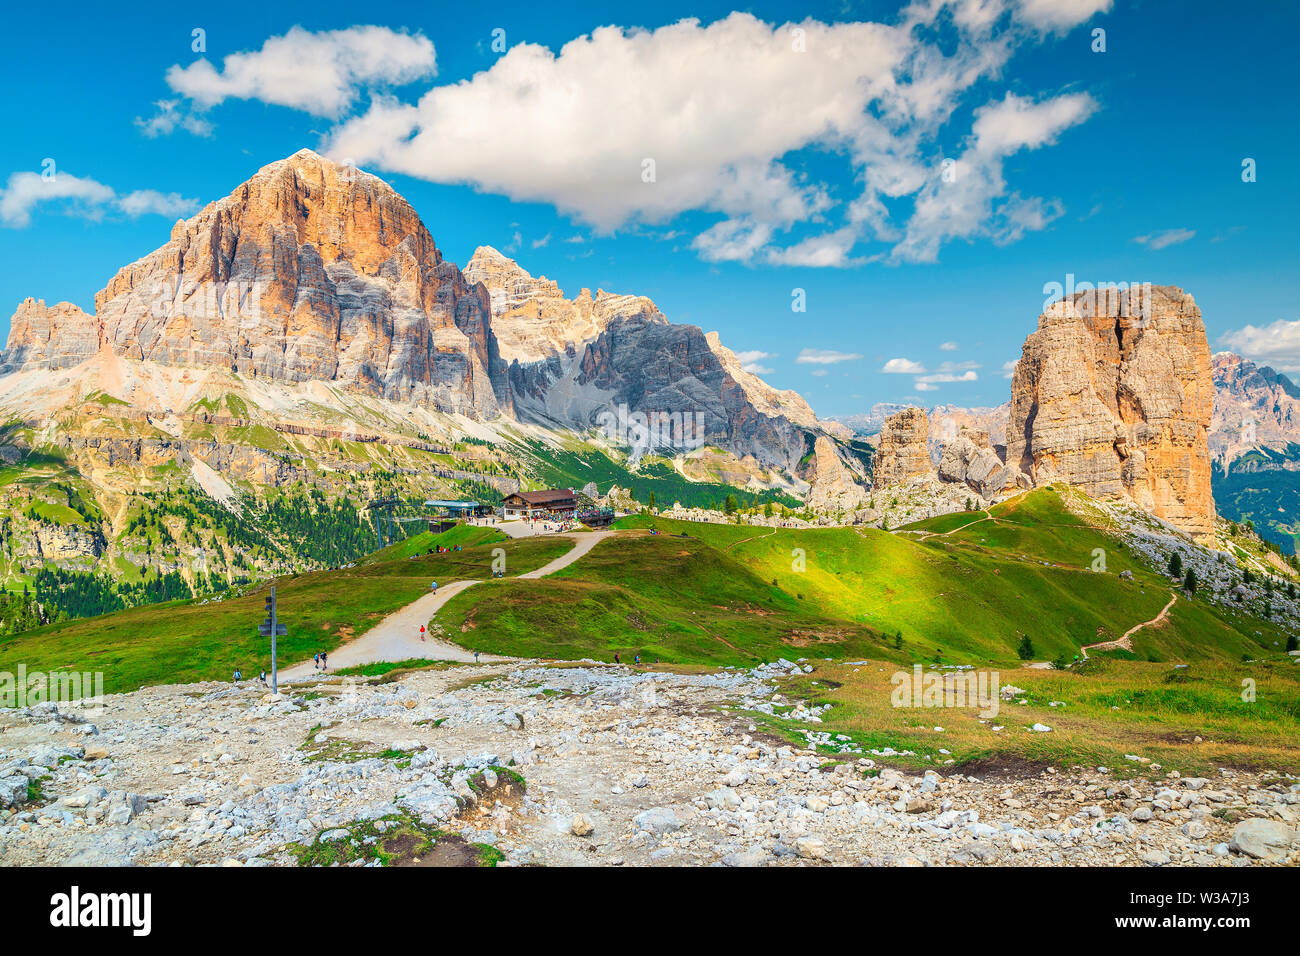 Fantastic landscape with beautiful mountains. Popular hiking trails with picturesque high mountains near Cinque Torri rock formations, Dolomites, Ital - Stock Image